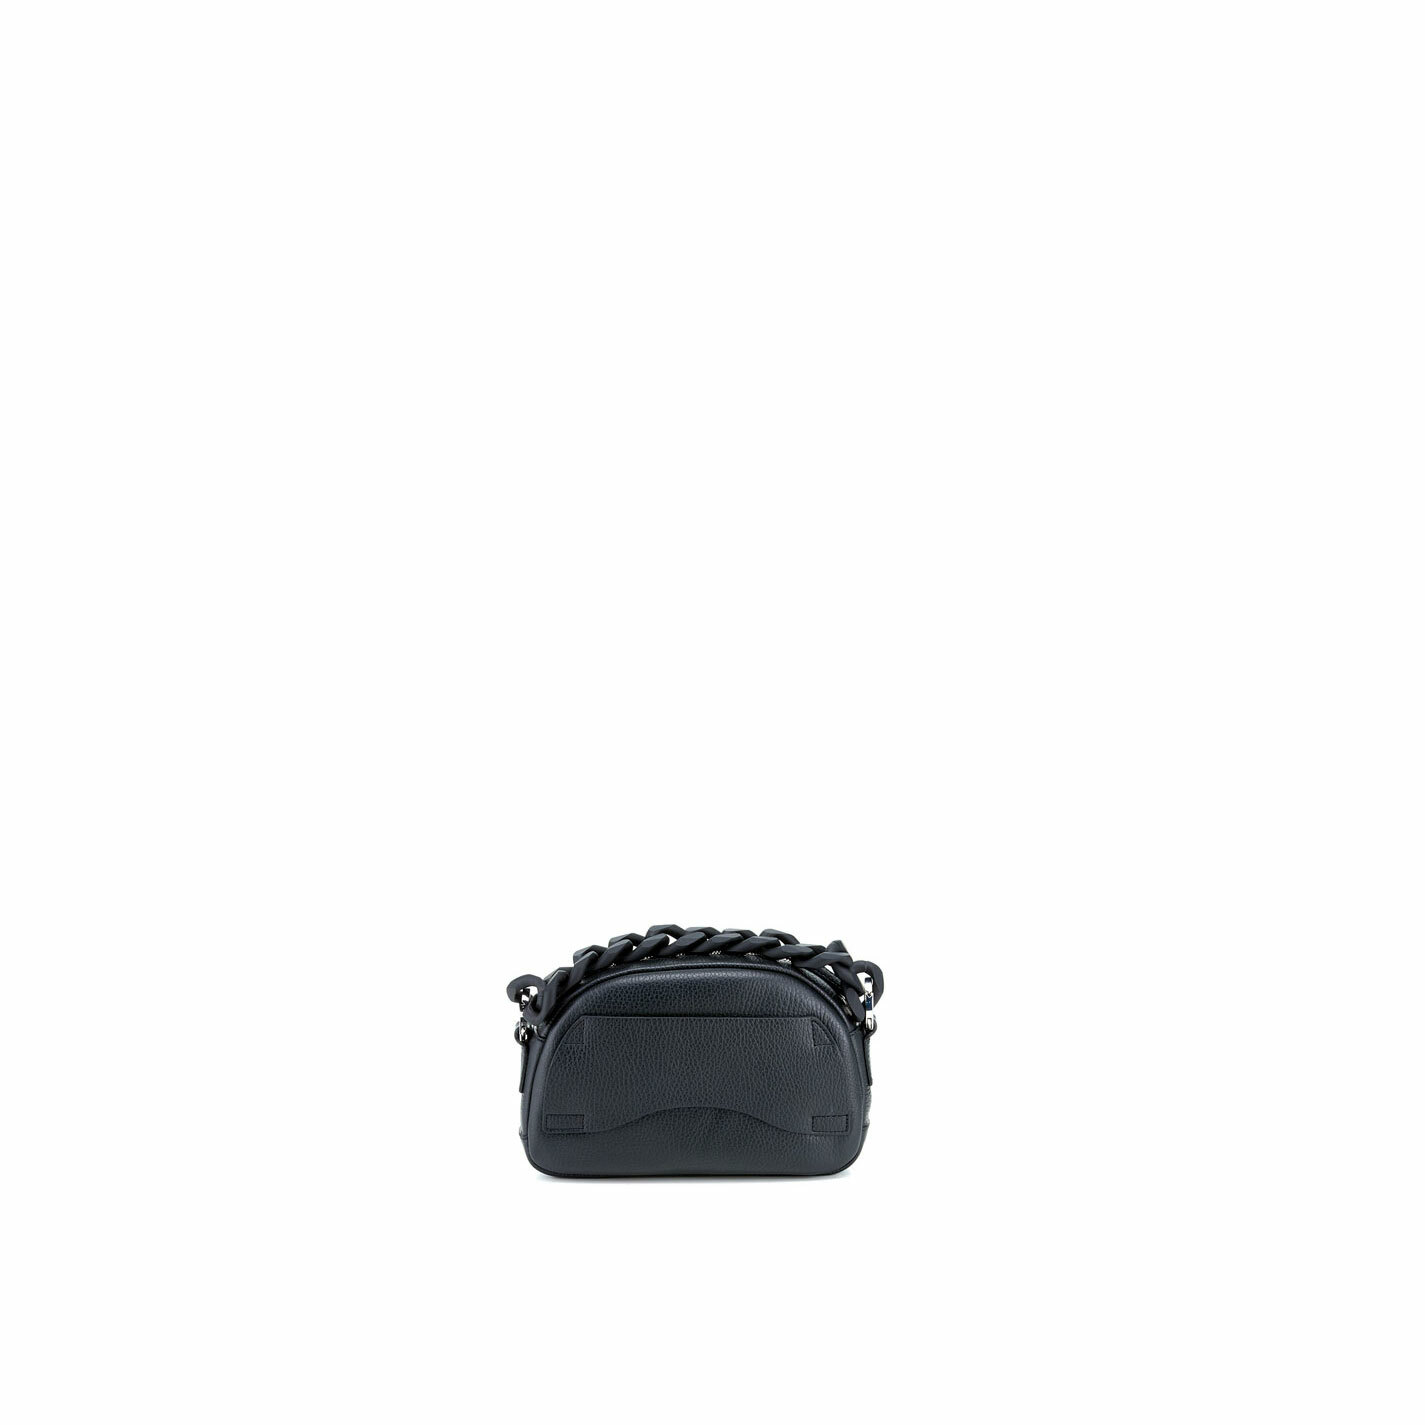 Babs Small<br />Mini black leather bag with black chain